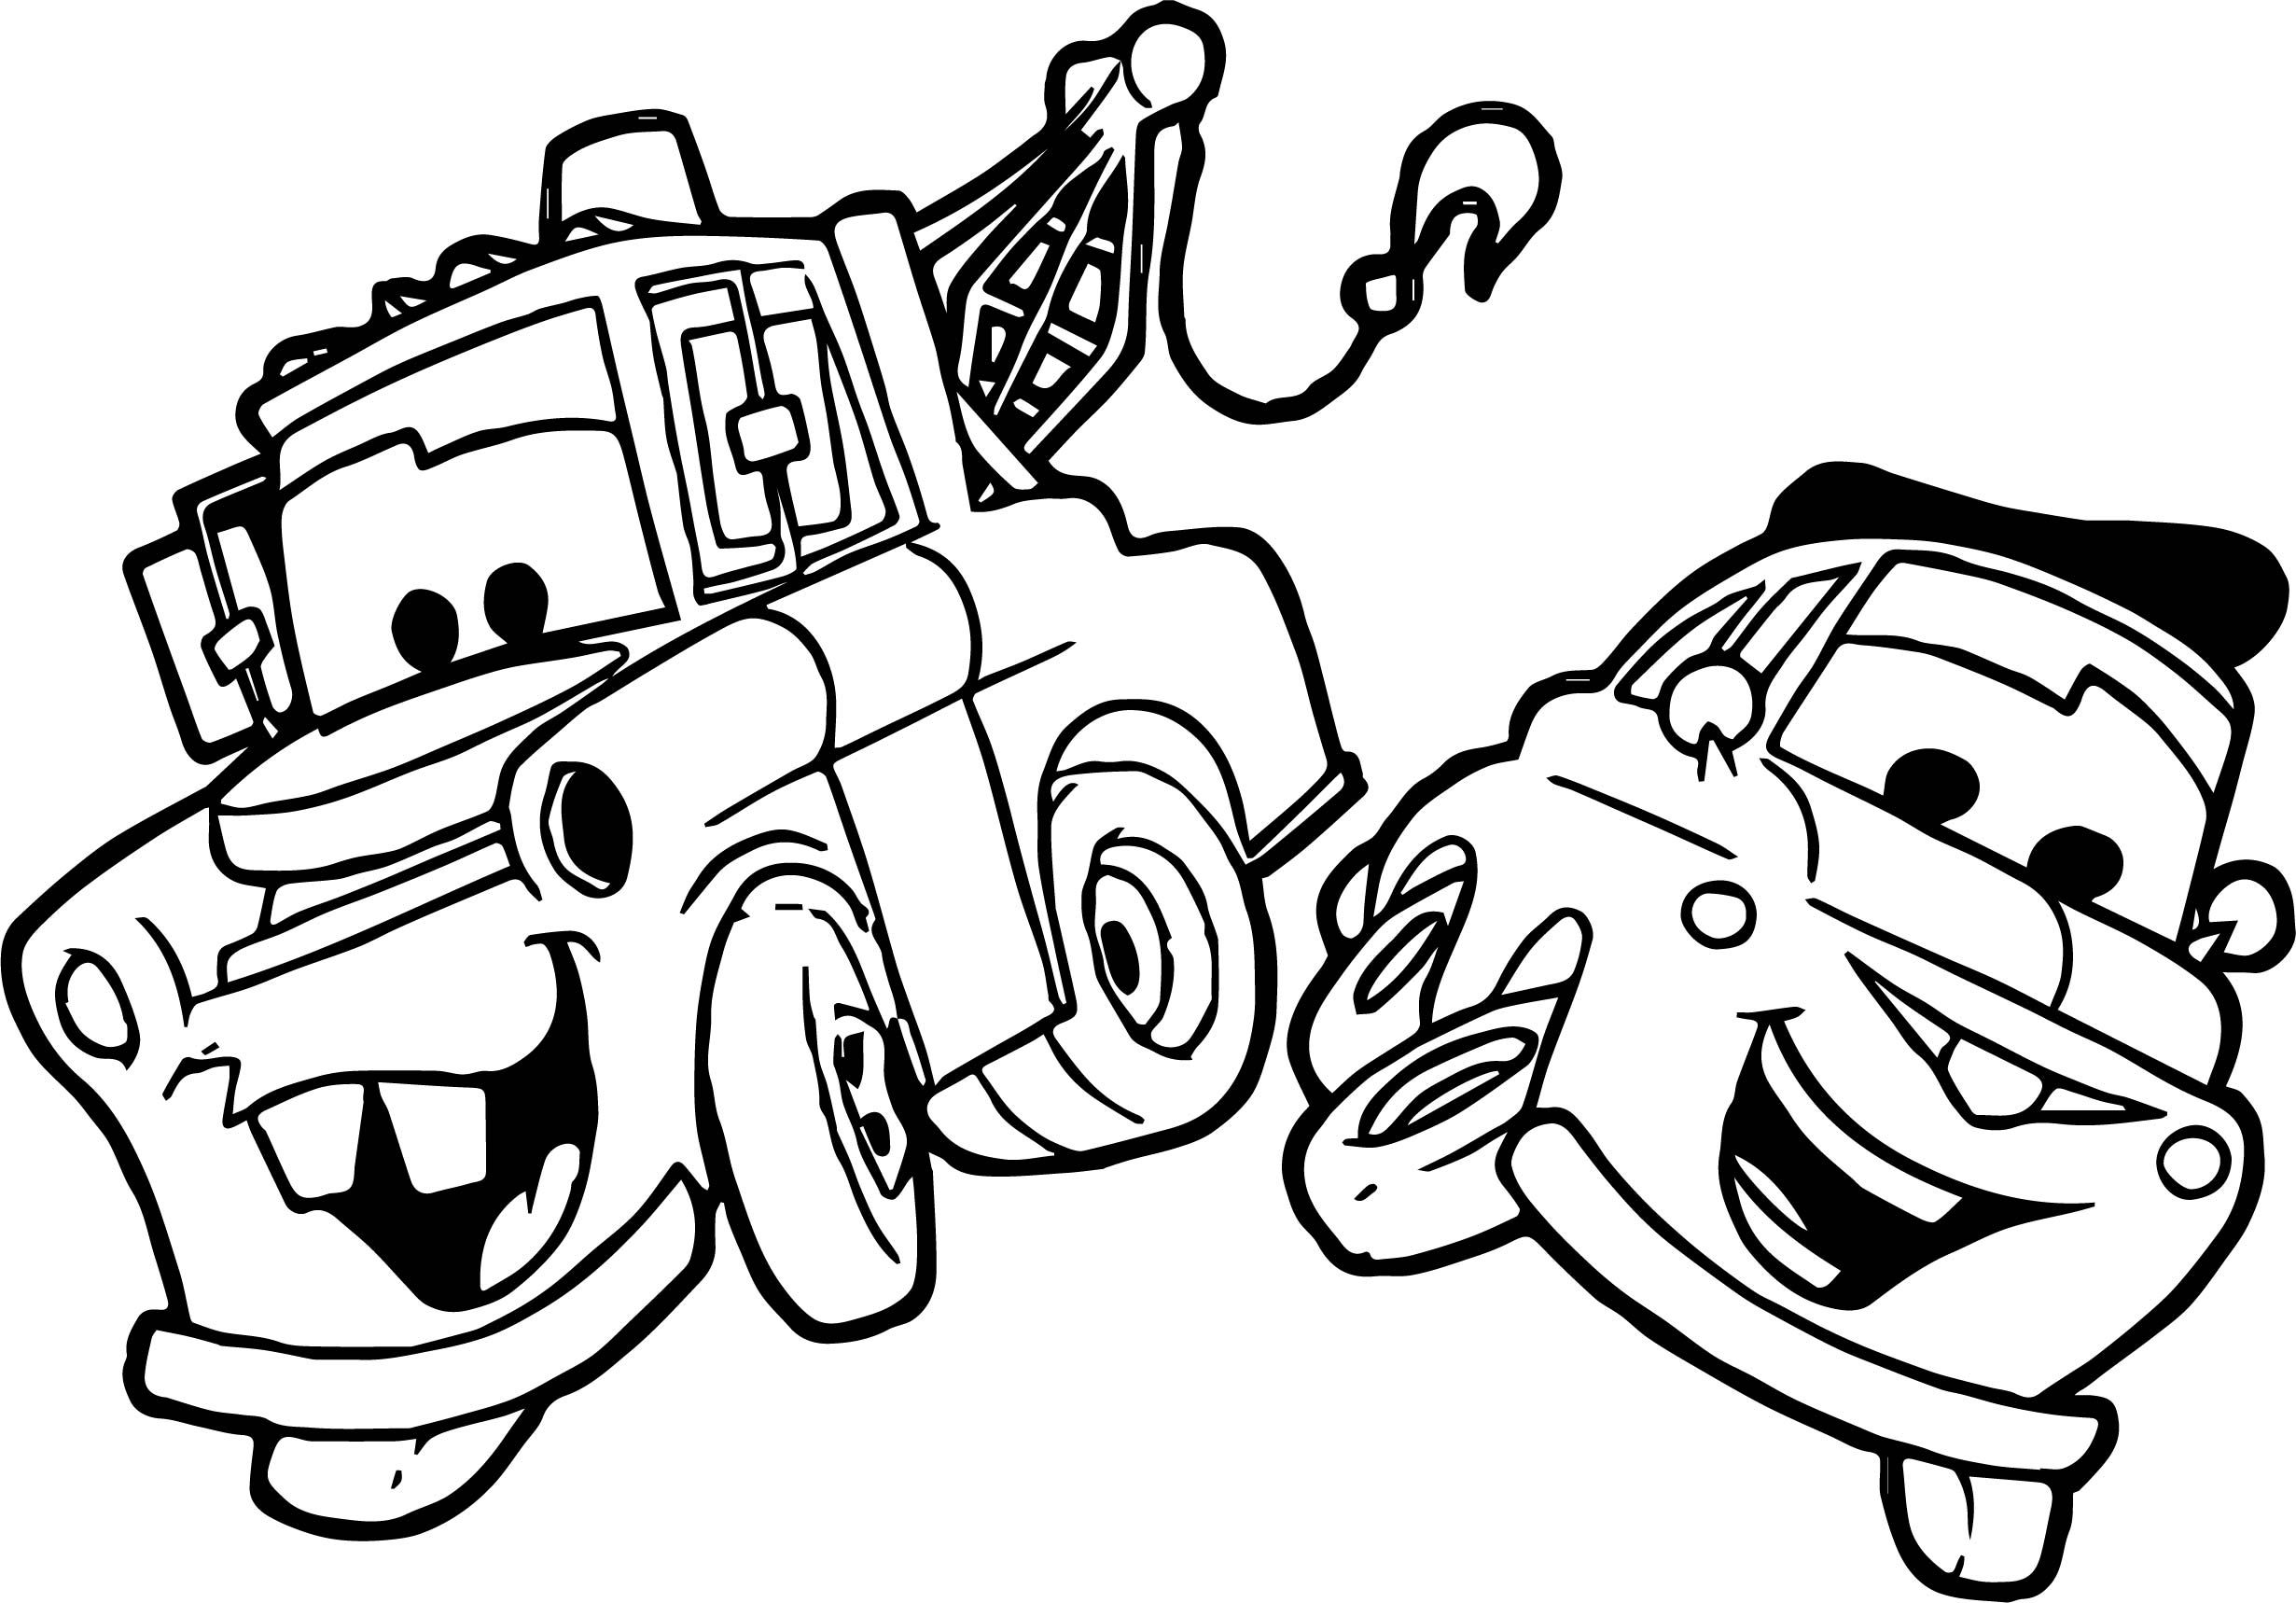 Awesome Pulling A Car Disney Cars Coloring Page Cars Coloring Pages Coloring Pages Disney Cars [ 1718 x 2461 Pixel ]